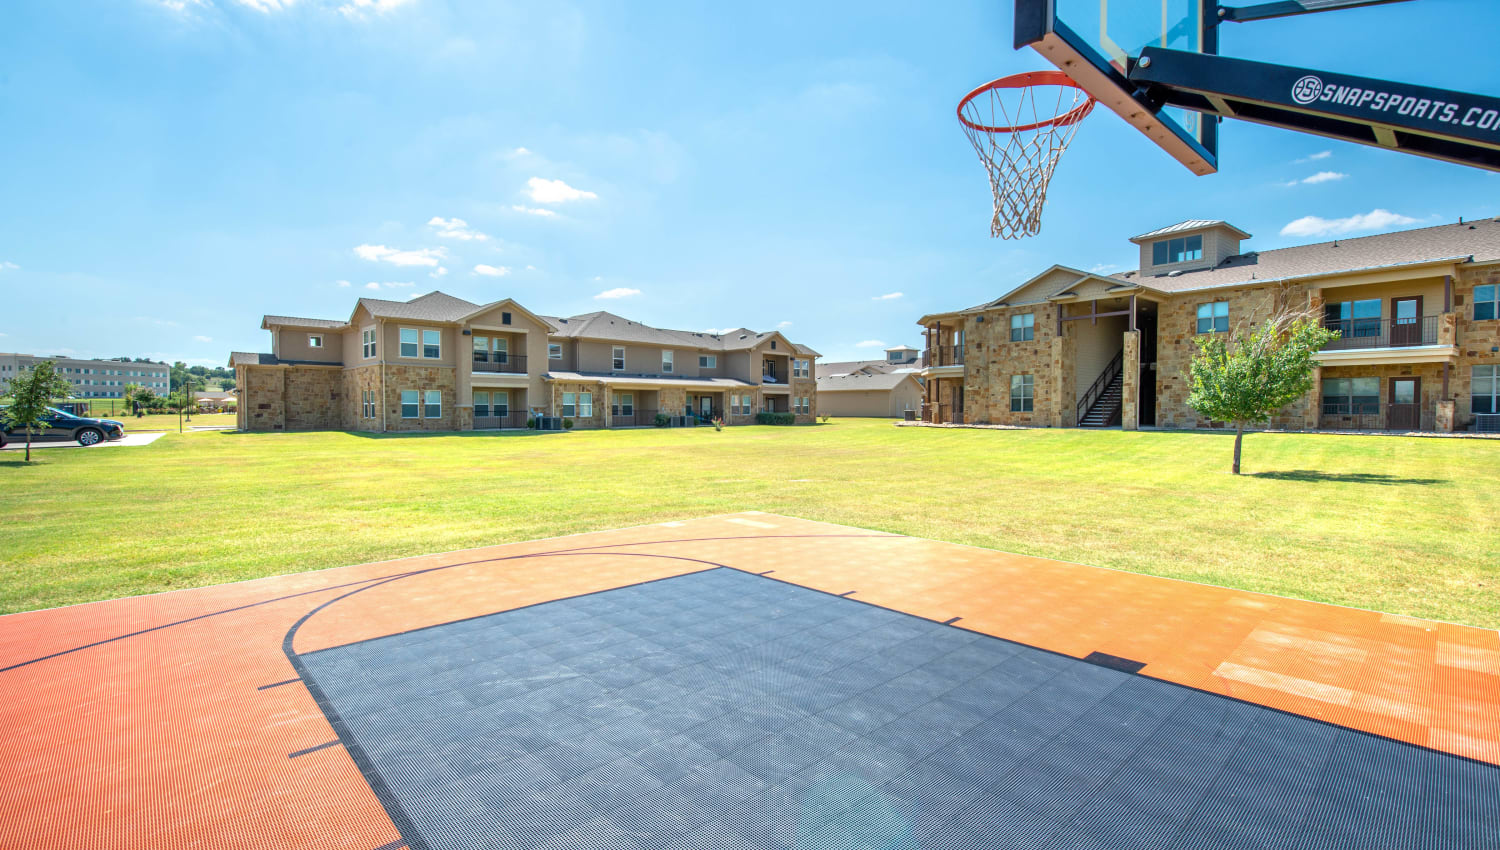 Onsite basketball court at Olympus Willow Park in Willow Park, Texas